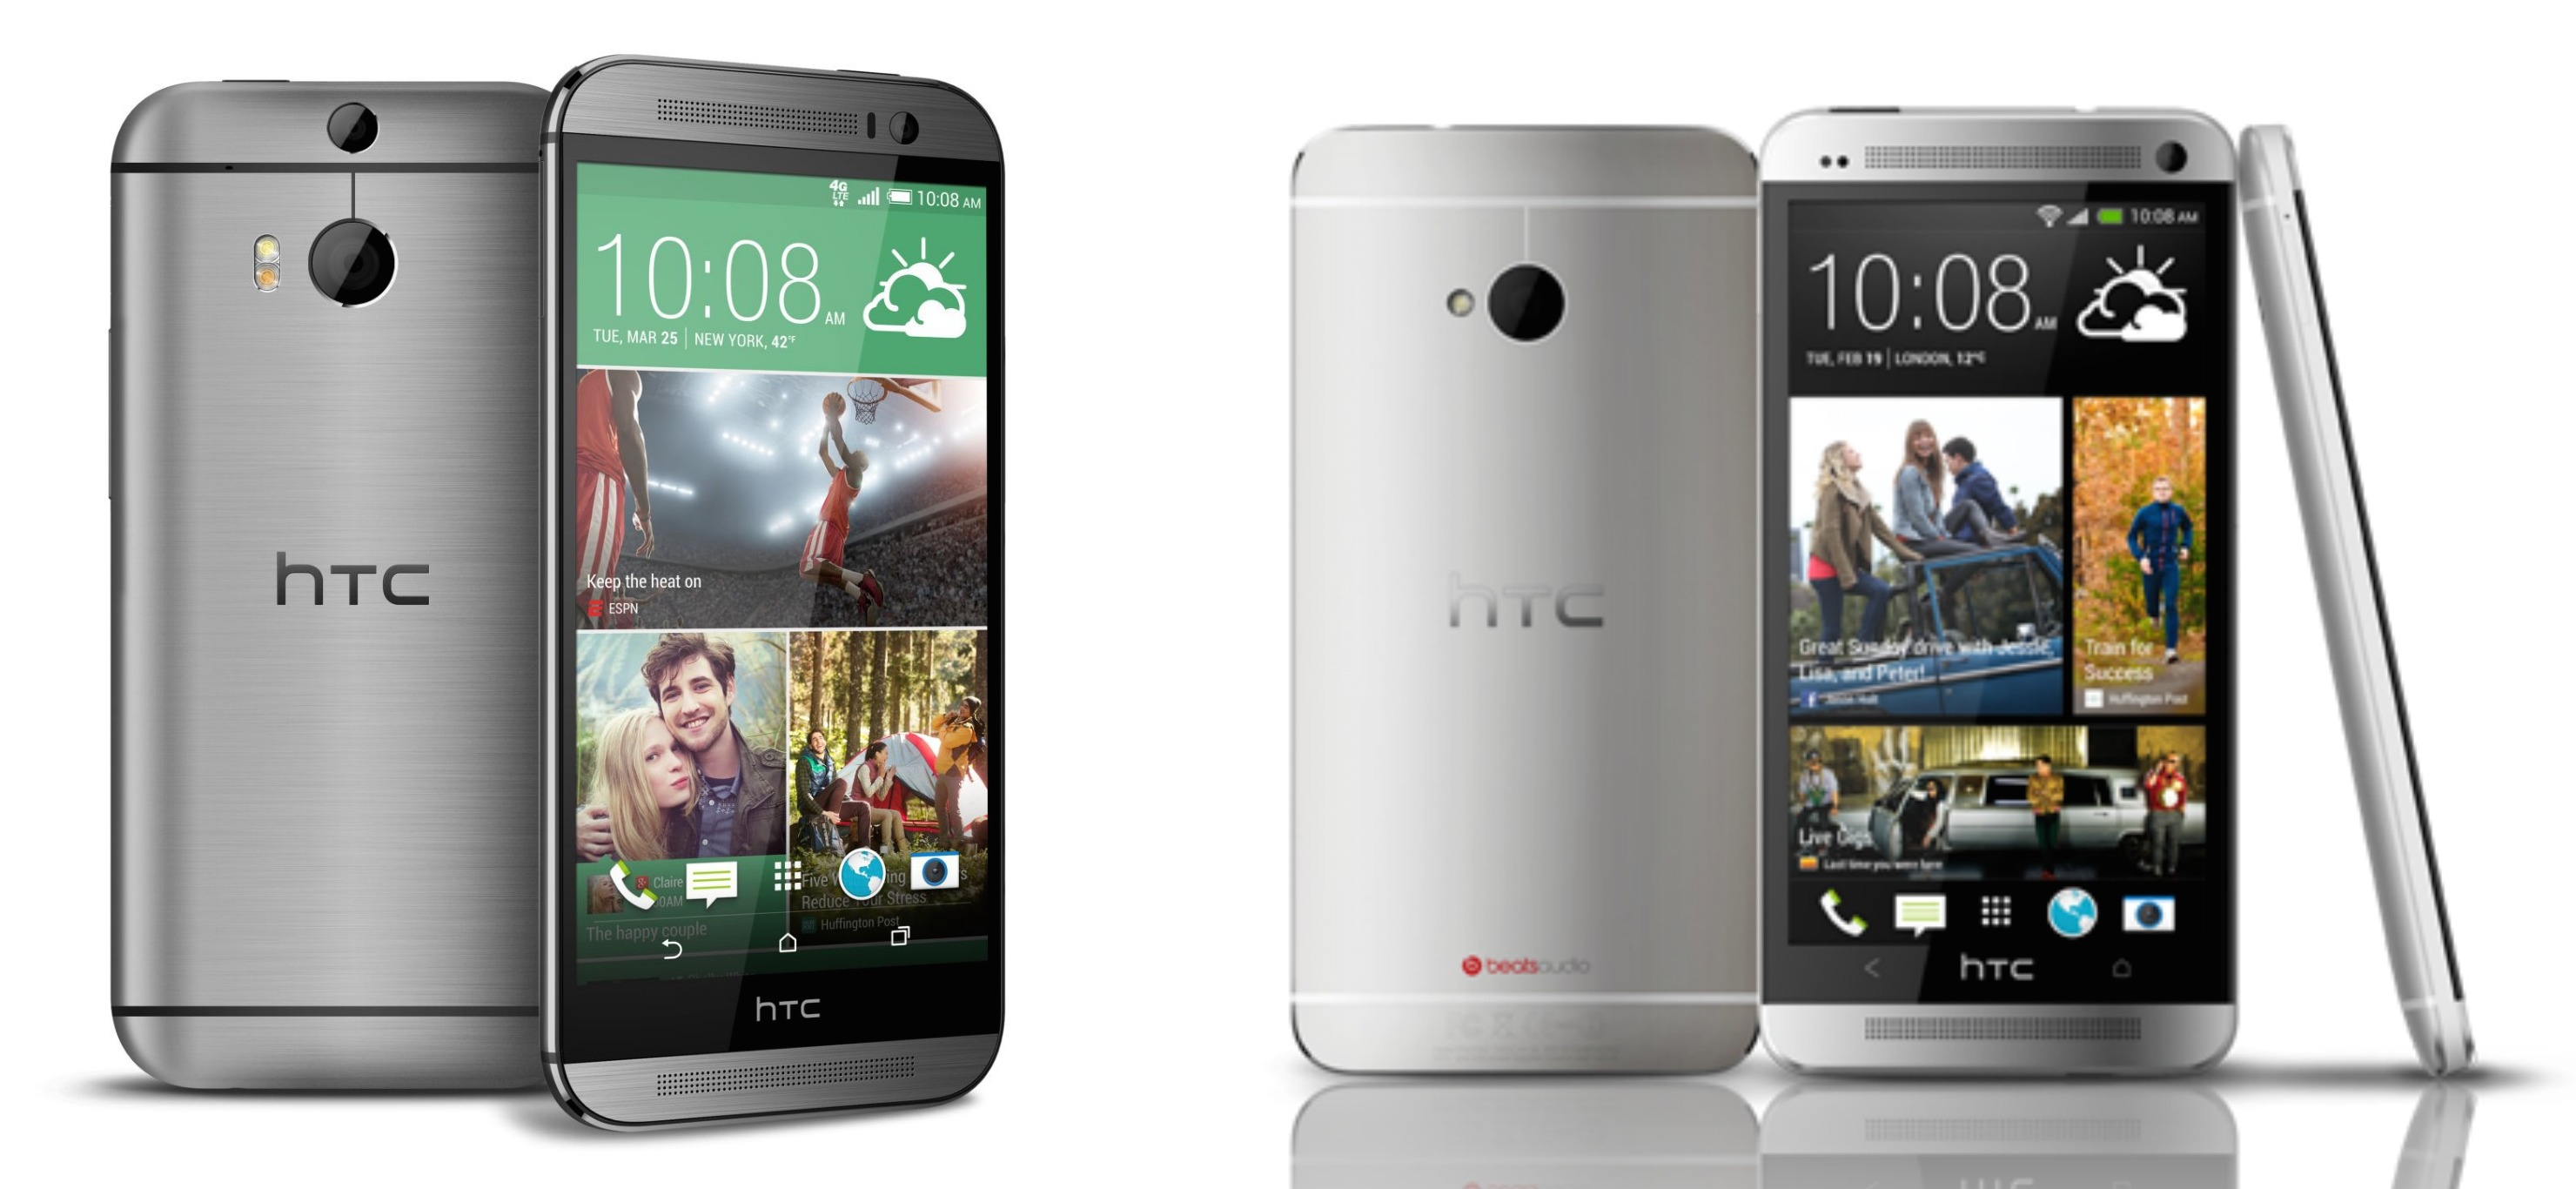 HTC One (2014) vs HTC One (2013) – was it a worthy upgrade? [POLL]